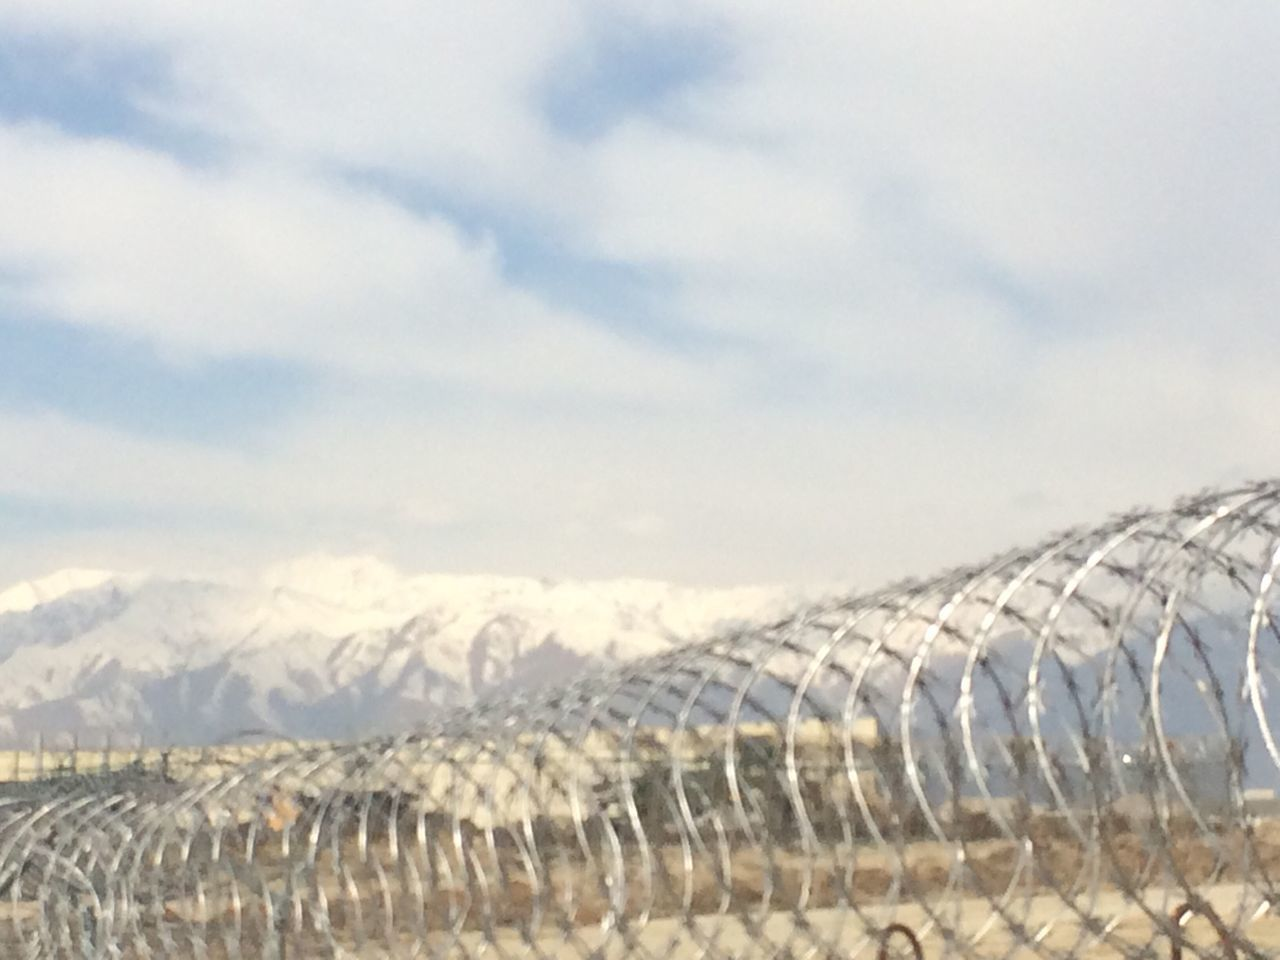 Sky No People Cold Temperature Outdoors Nature Day Winter Building Exterior Built Structure Architecture Cloud - Sky Mountain Landscape Beauty In Nature Razor Wire Fence